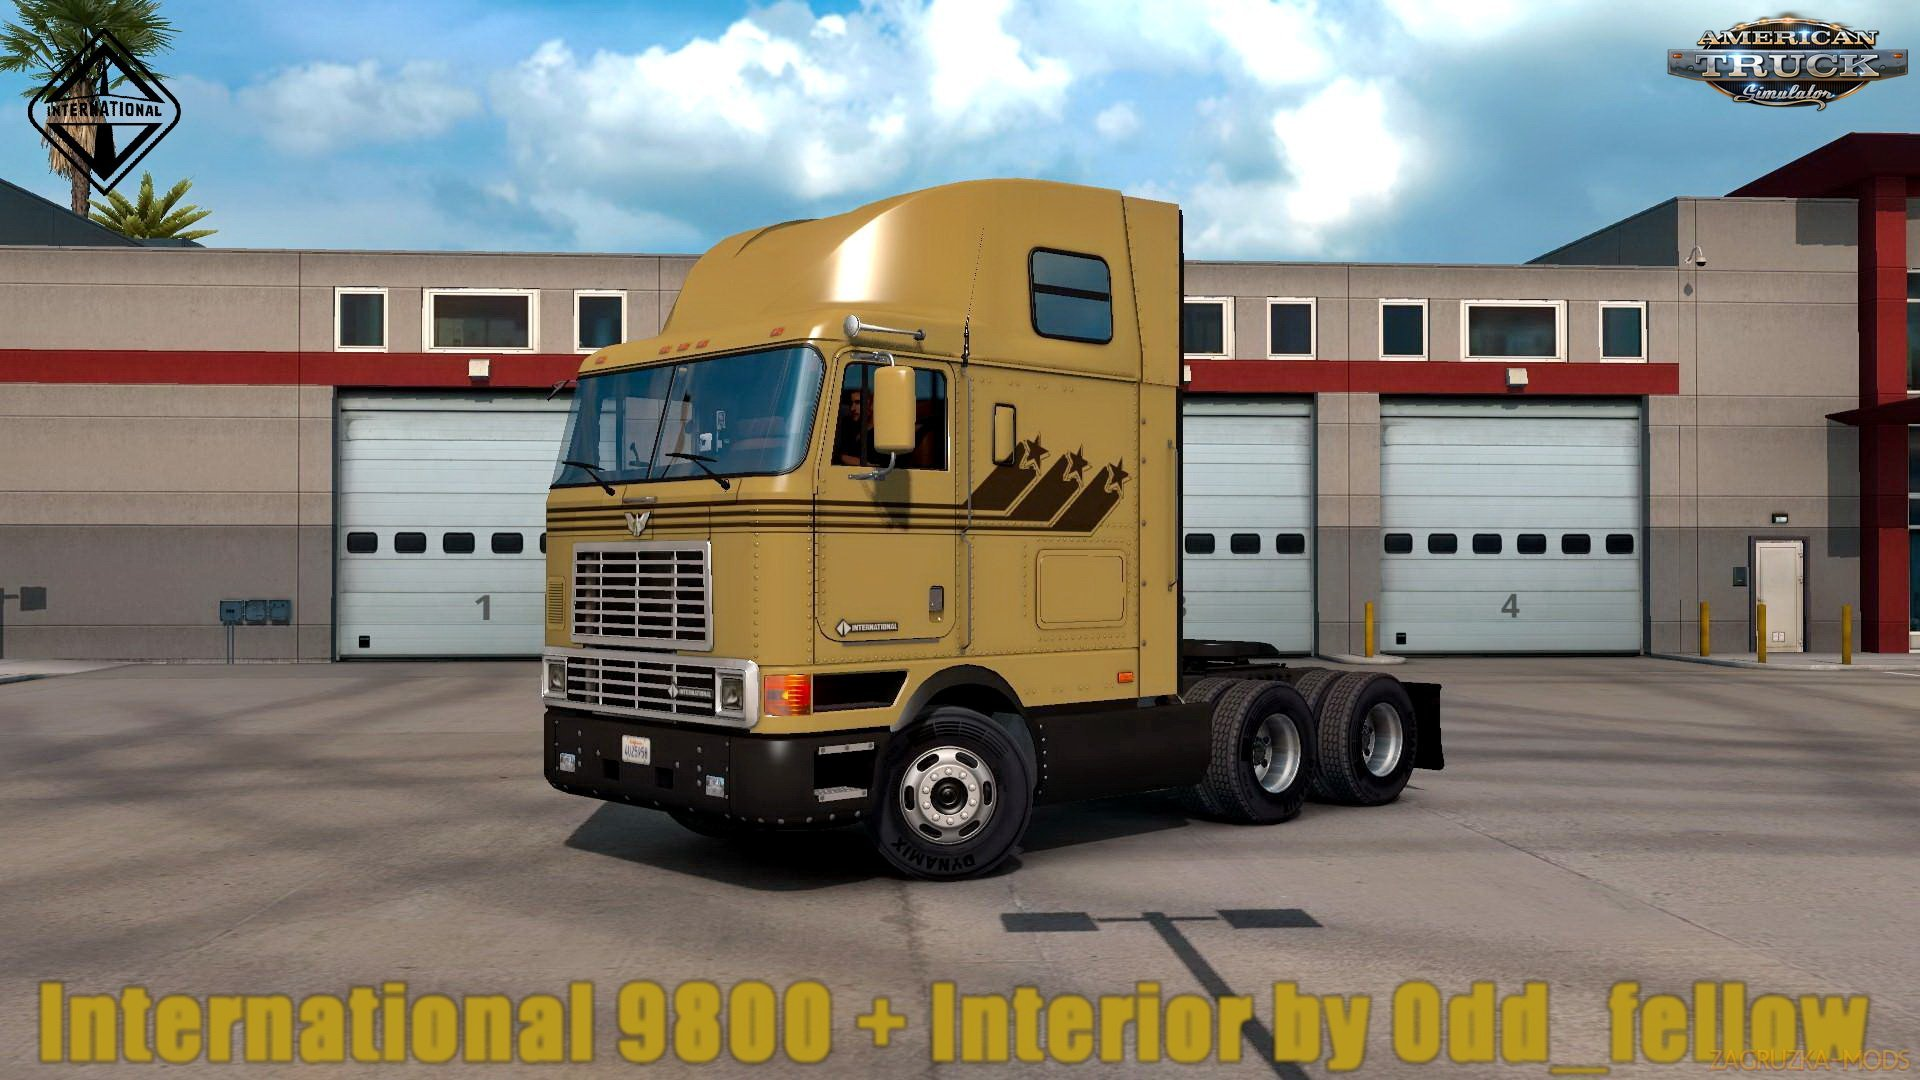 International 9800 + Interior v2.0 by Odd_fellow (1.30.x) for ATS